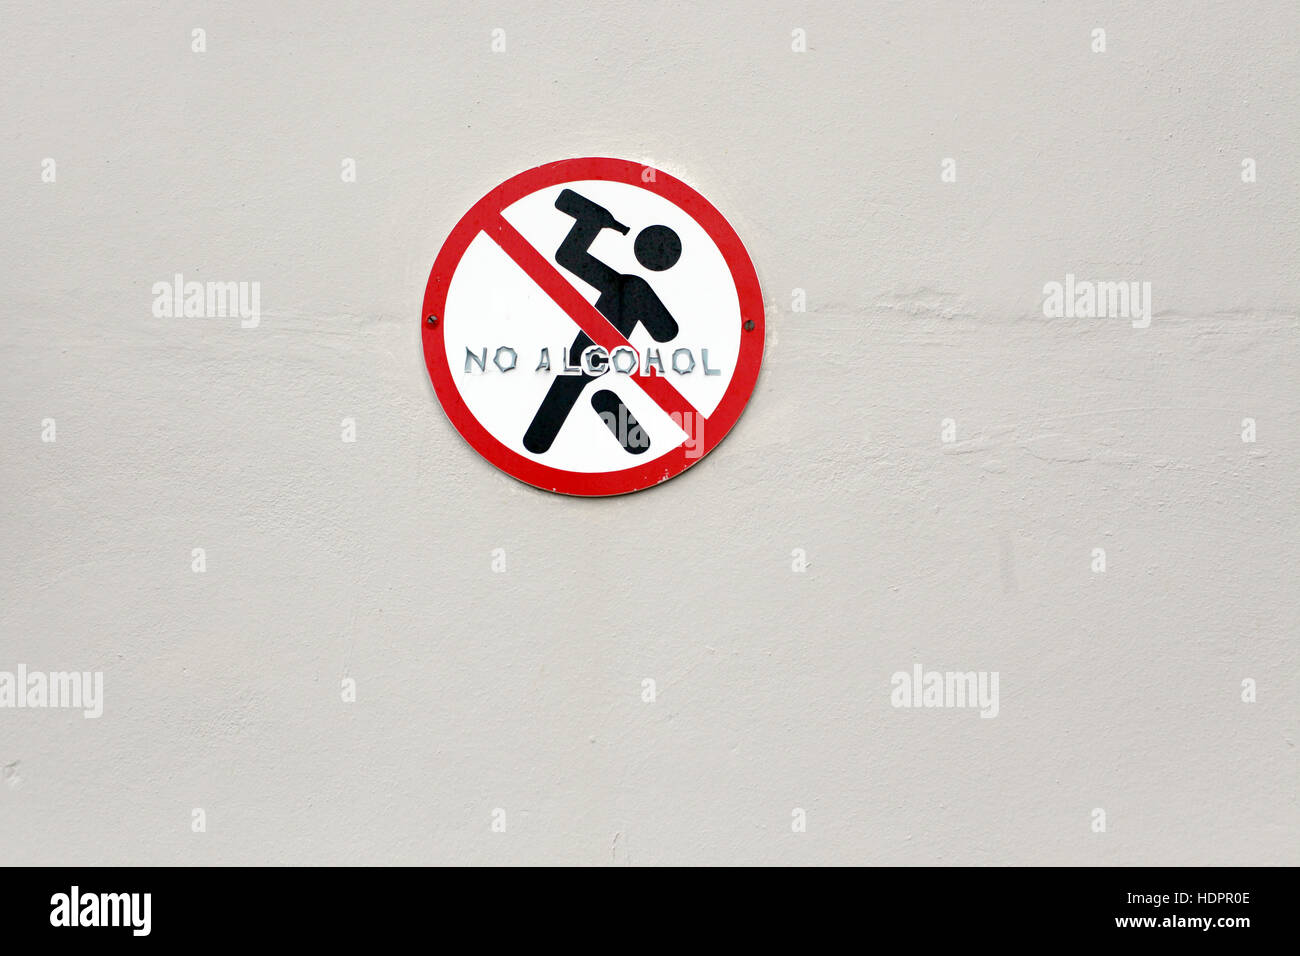 No Alcohol consumption sign - Stock Image